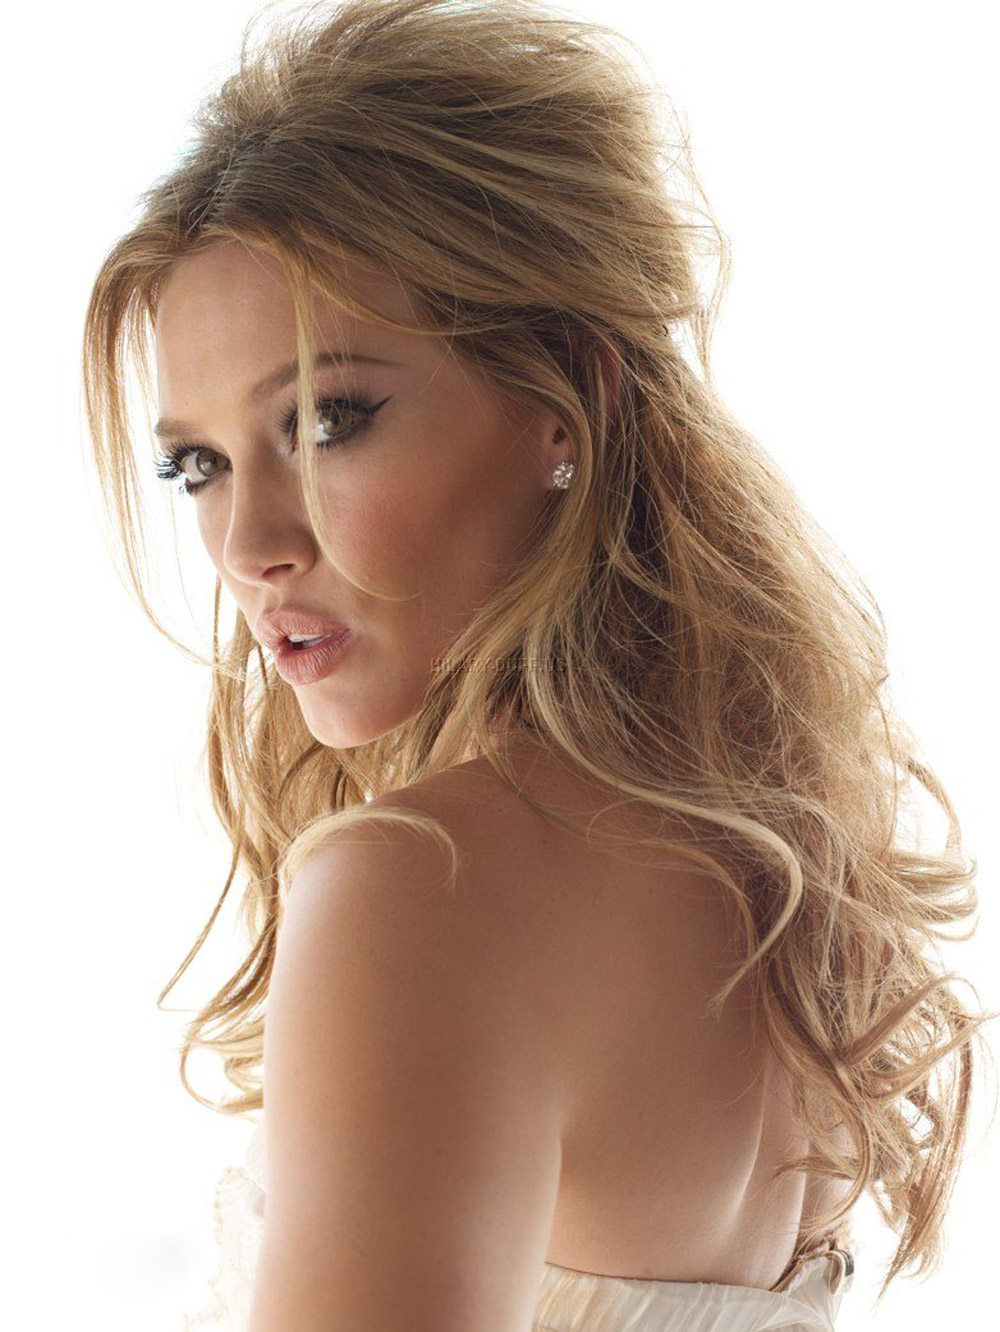 Hot Wallpapers Of Hollywood Actress Hilary Duff Uth